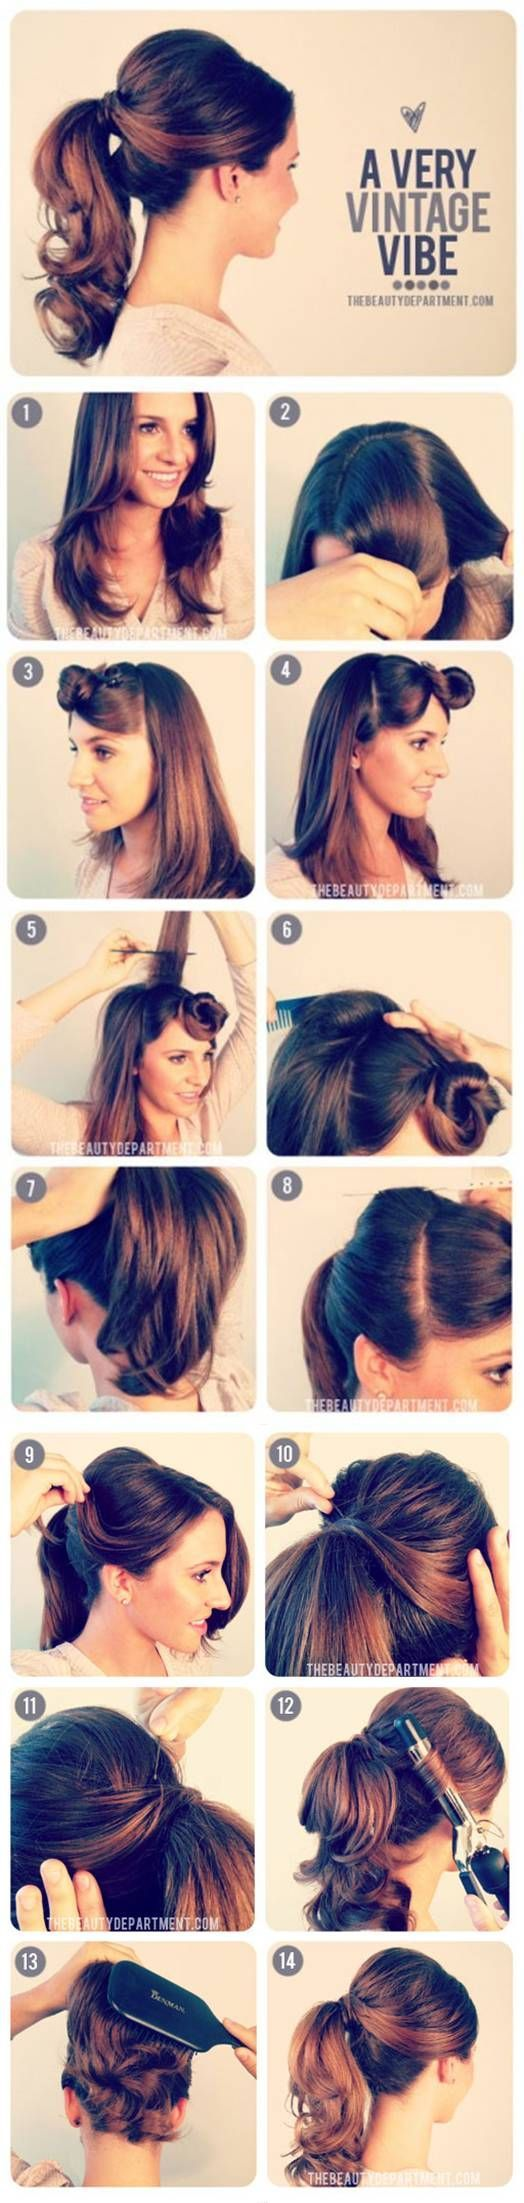 17 Retro DIY Hairstyles You Must Try   HipHomeMaking Follow Us on Facebook ==> https://www.facebook.com/HipHomeMakingOfficial